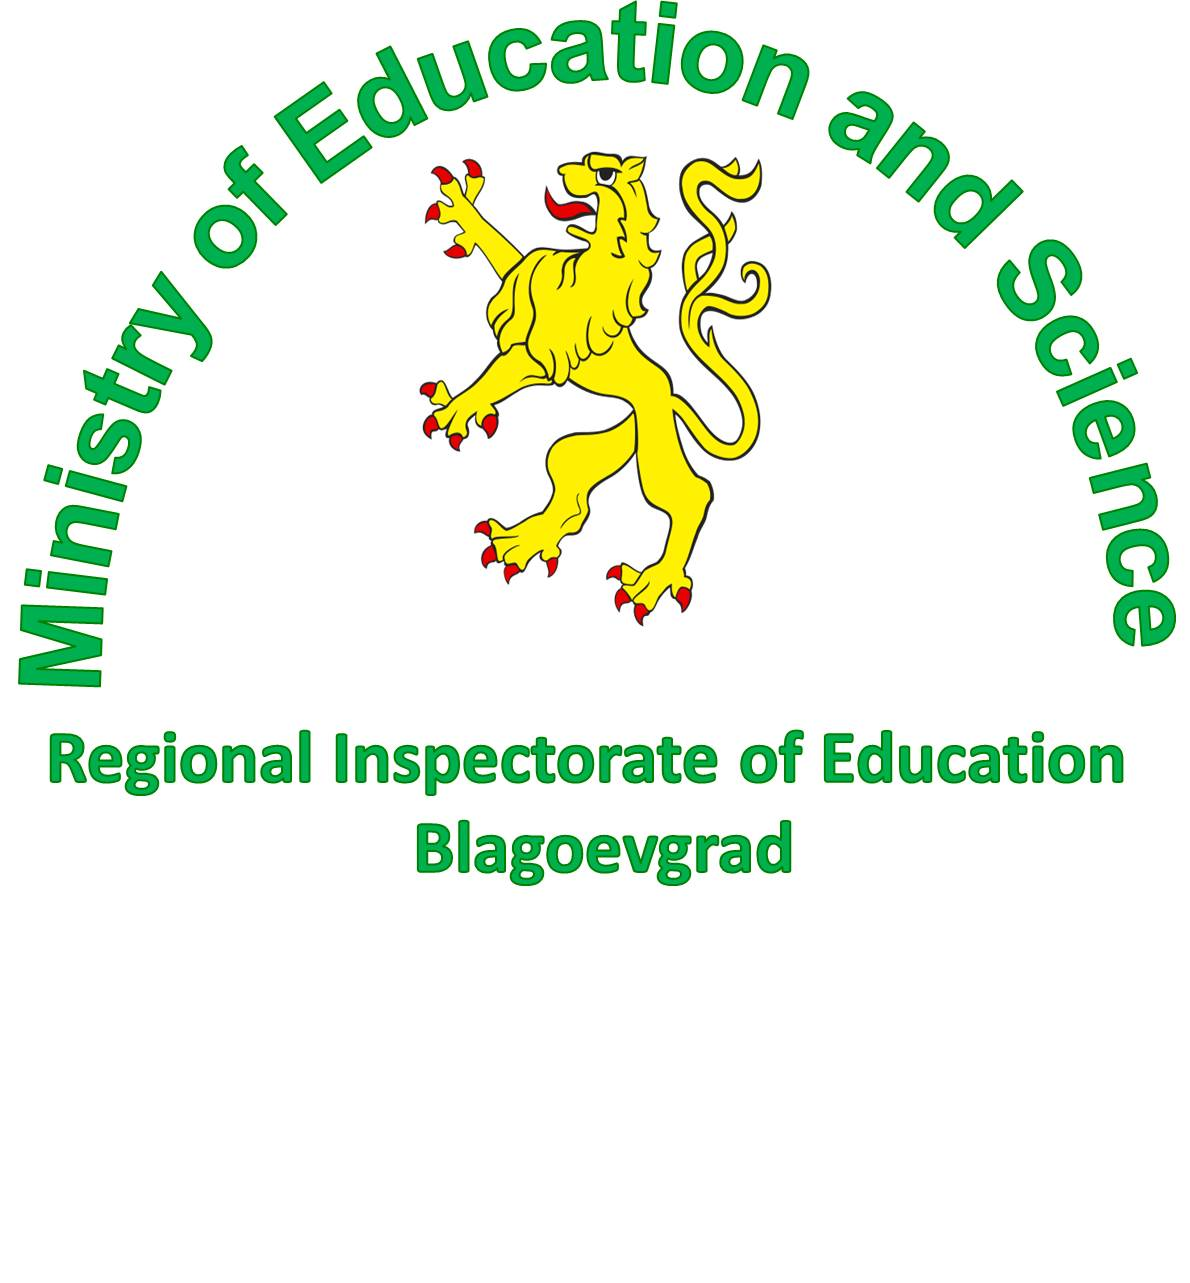 The Regional Inspectorate of Education (RIE), Bulgaria's logo